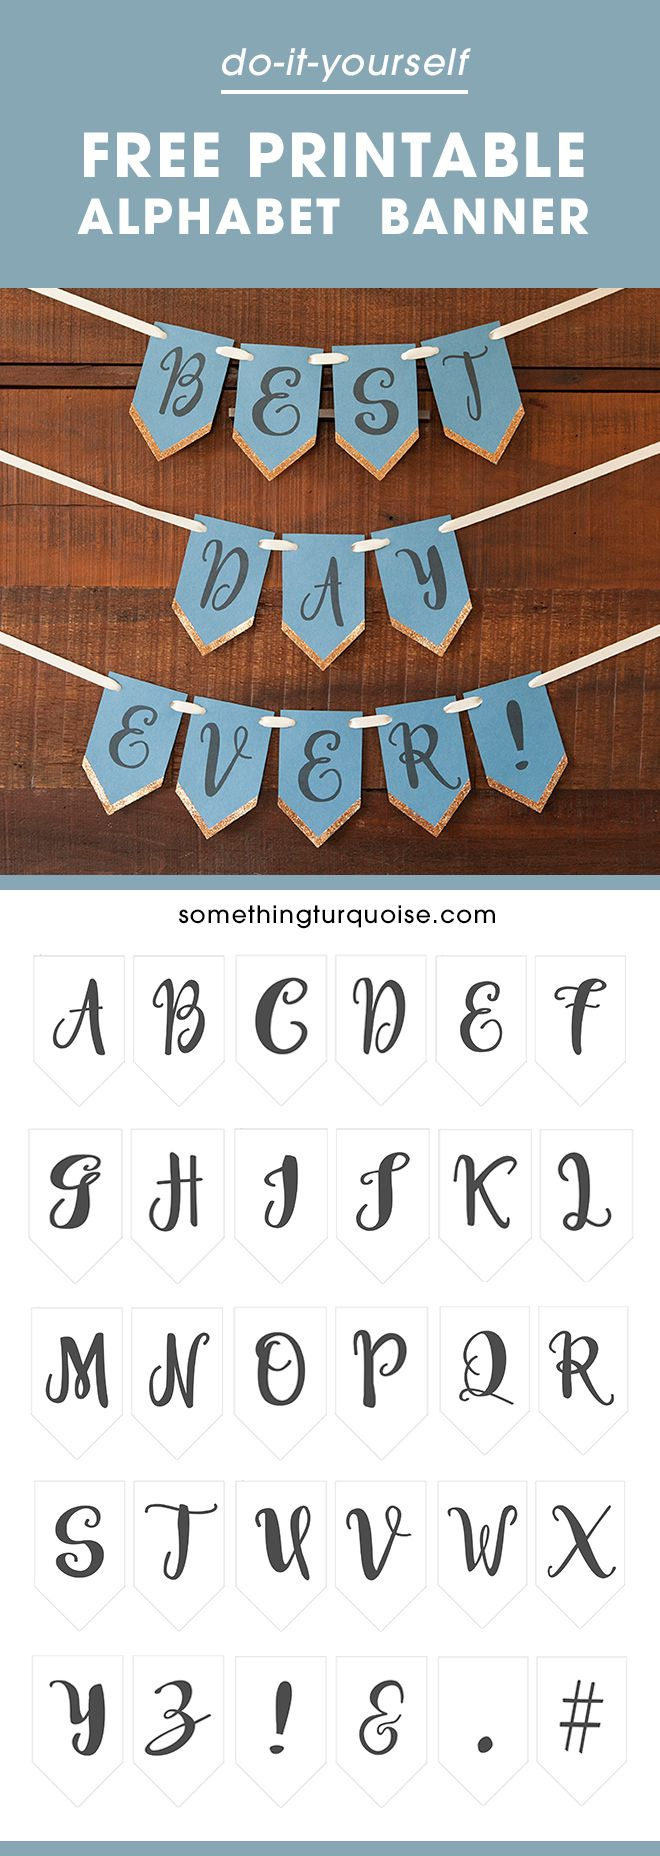 17 best ideas about banner template banners check out this super cute printable alphabet banner glitter